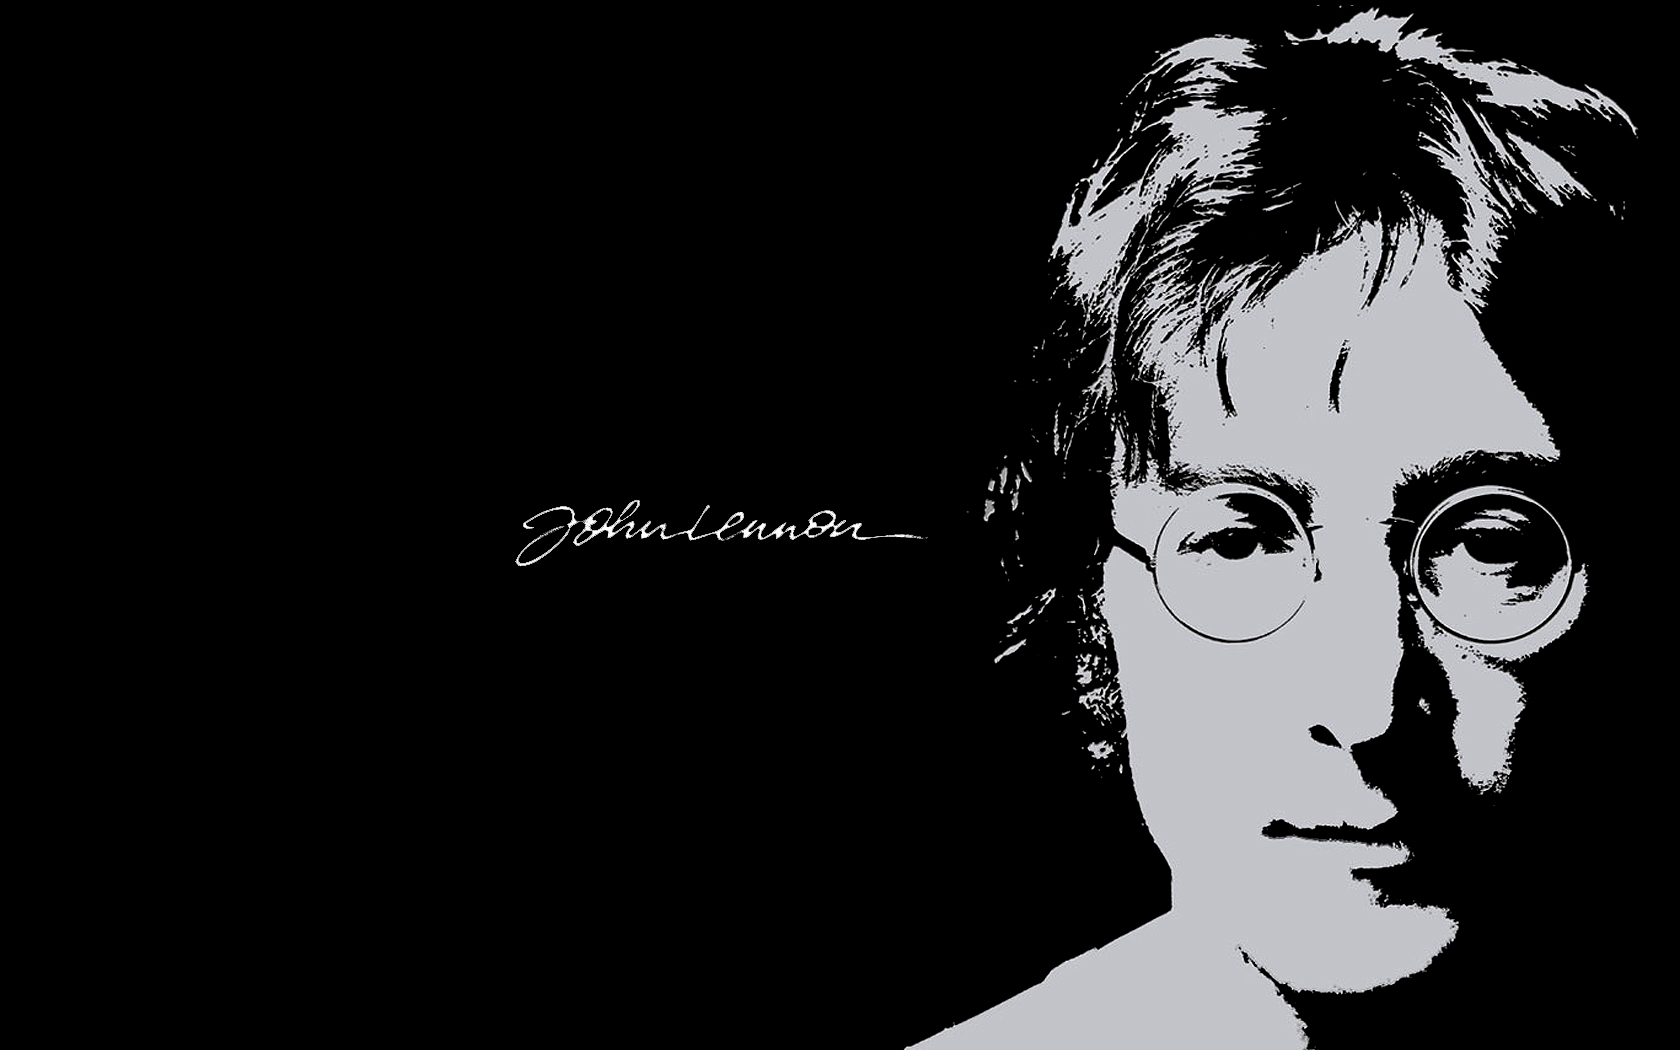 John lennon hd wallpaper john lennon wallpapers  Chainimage 1680x1050